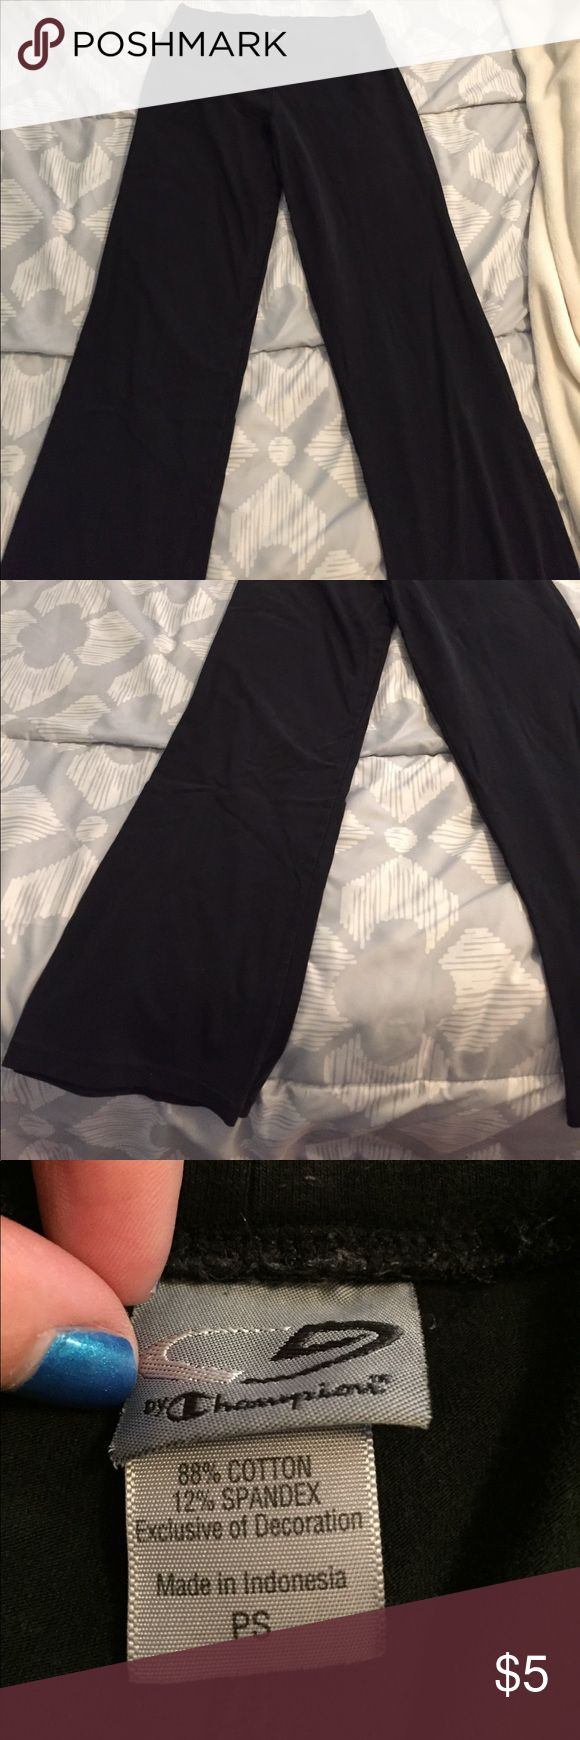 "Champion Yoga Pants This is a pair of black Champion yoga pants. They are flared at the bottom and have a 27"" inseam. They have a double layer band at the waist and are made of 88% cotton and 12% spandex. They are in great condition except they are a little faded. Smoke free home and bundle to save. Champion Pants Track Pants & Joggers"